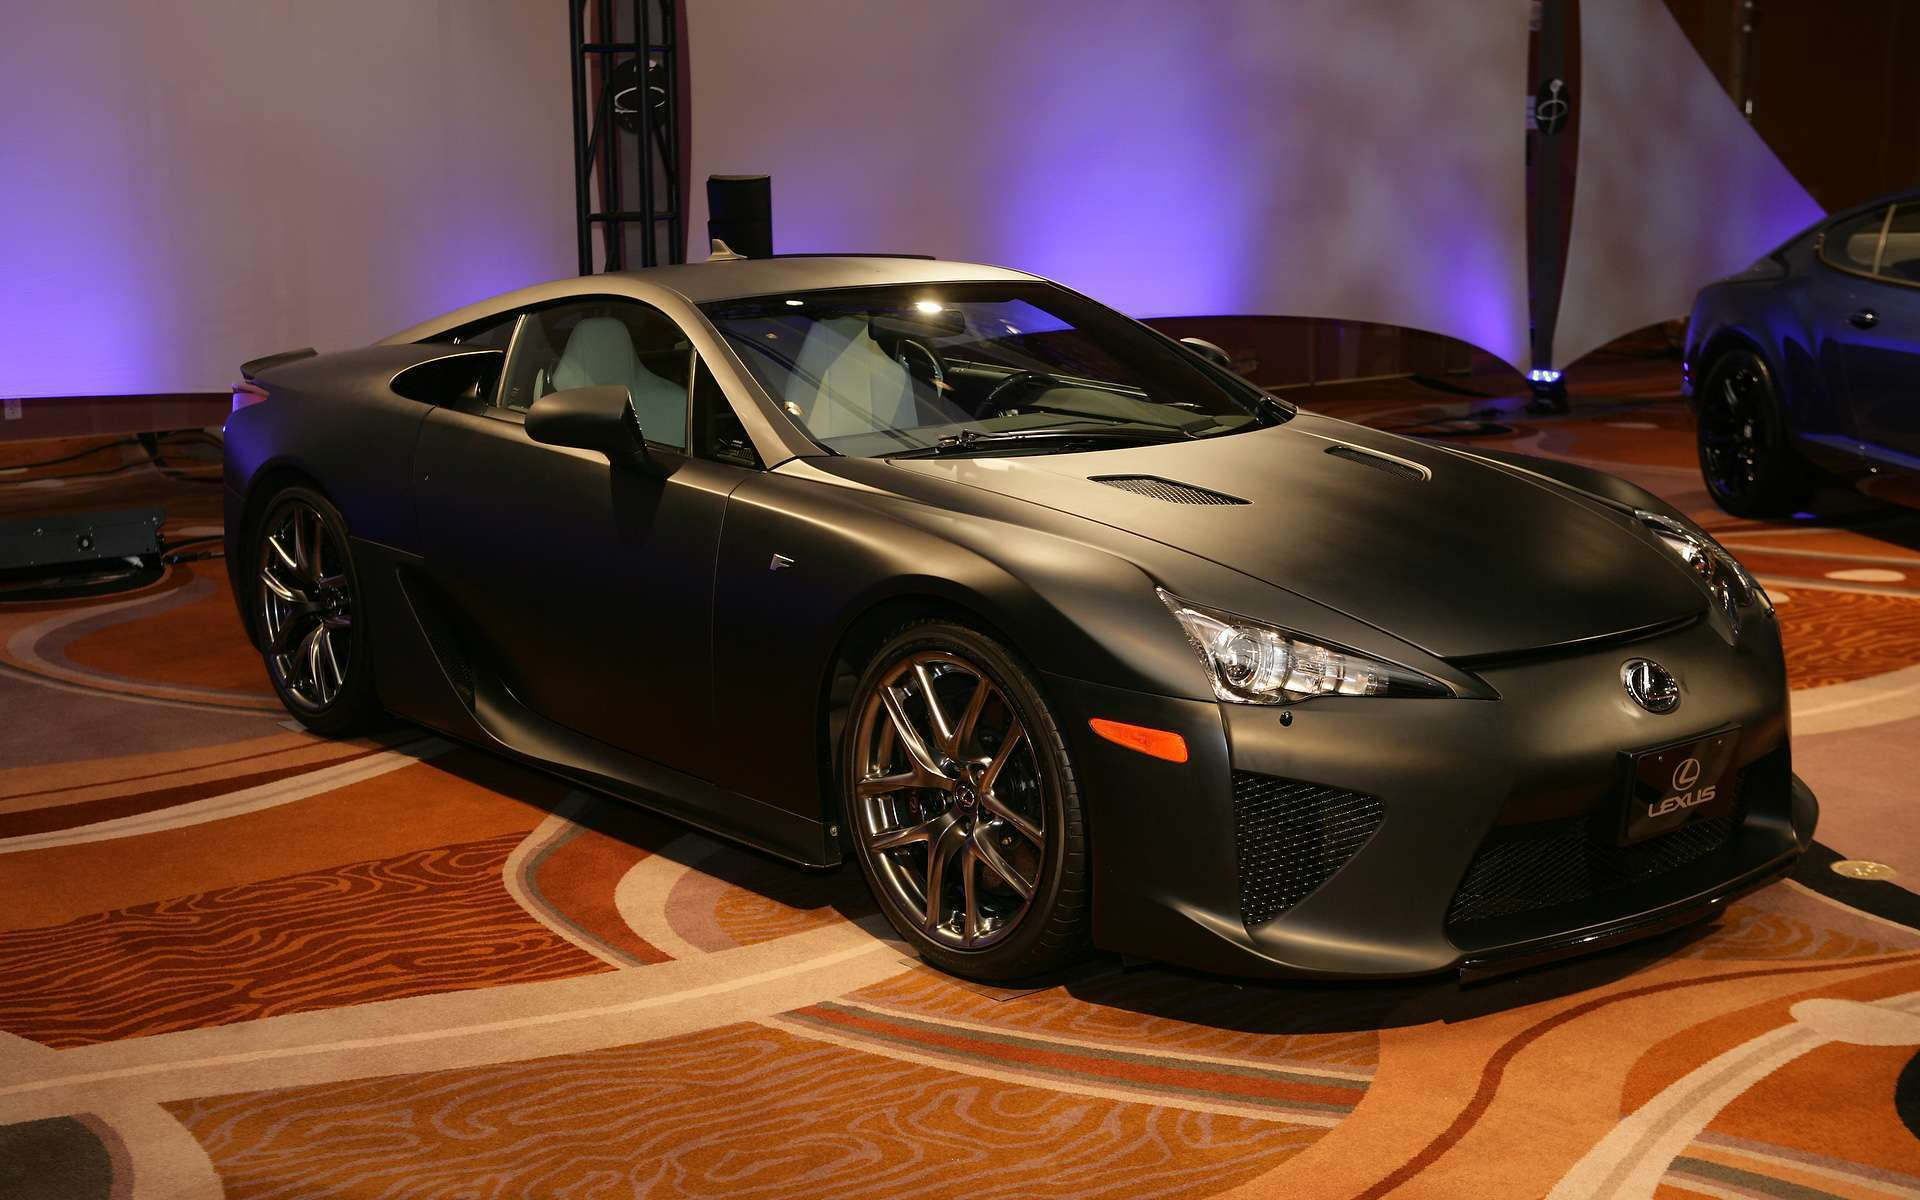 Lexus Is 350 >> 2012 Lexus North American International Auto Show Hd Wallpapers : Hd Car Wallpapers